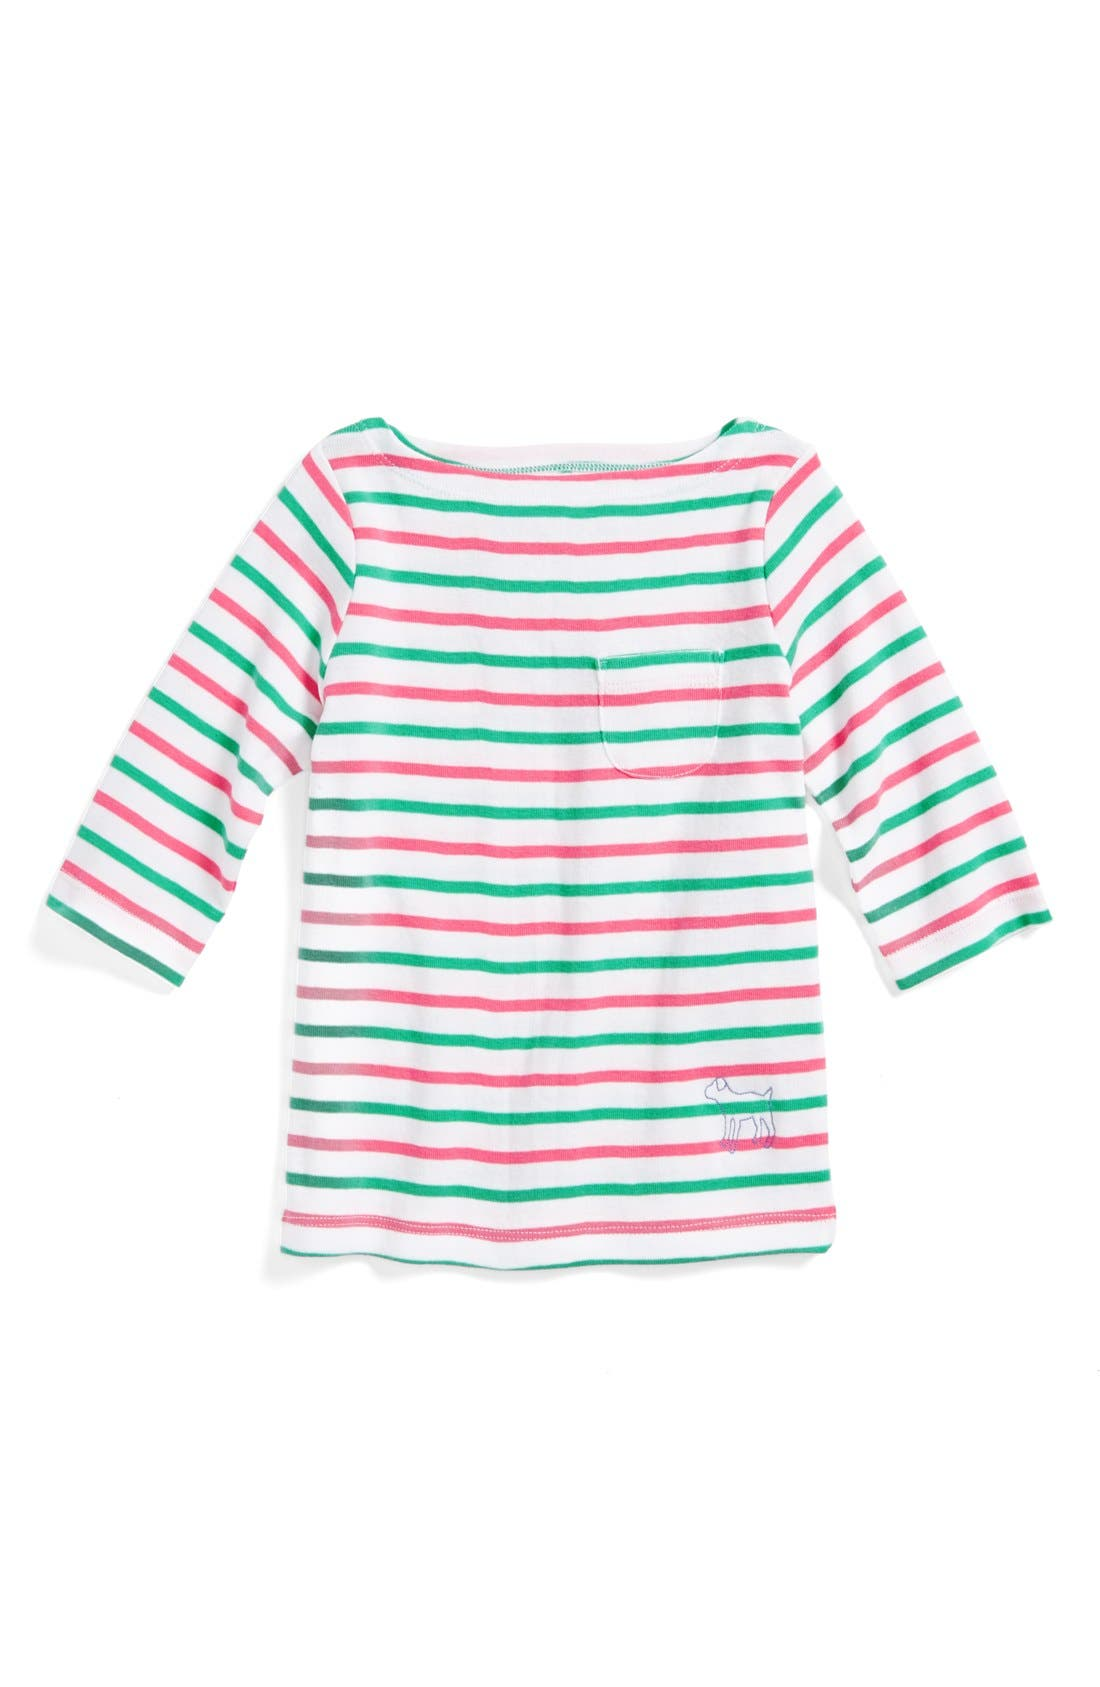 Alternate Image 1 Selected - Mini Boden Stripy Boatneck Shirt (Toddler Girls, Little Girls & Big Girls)